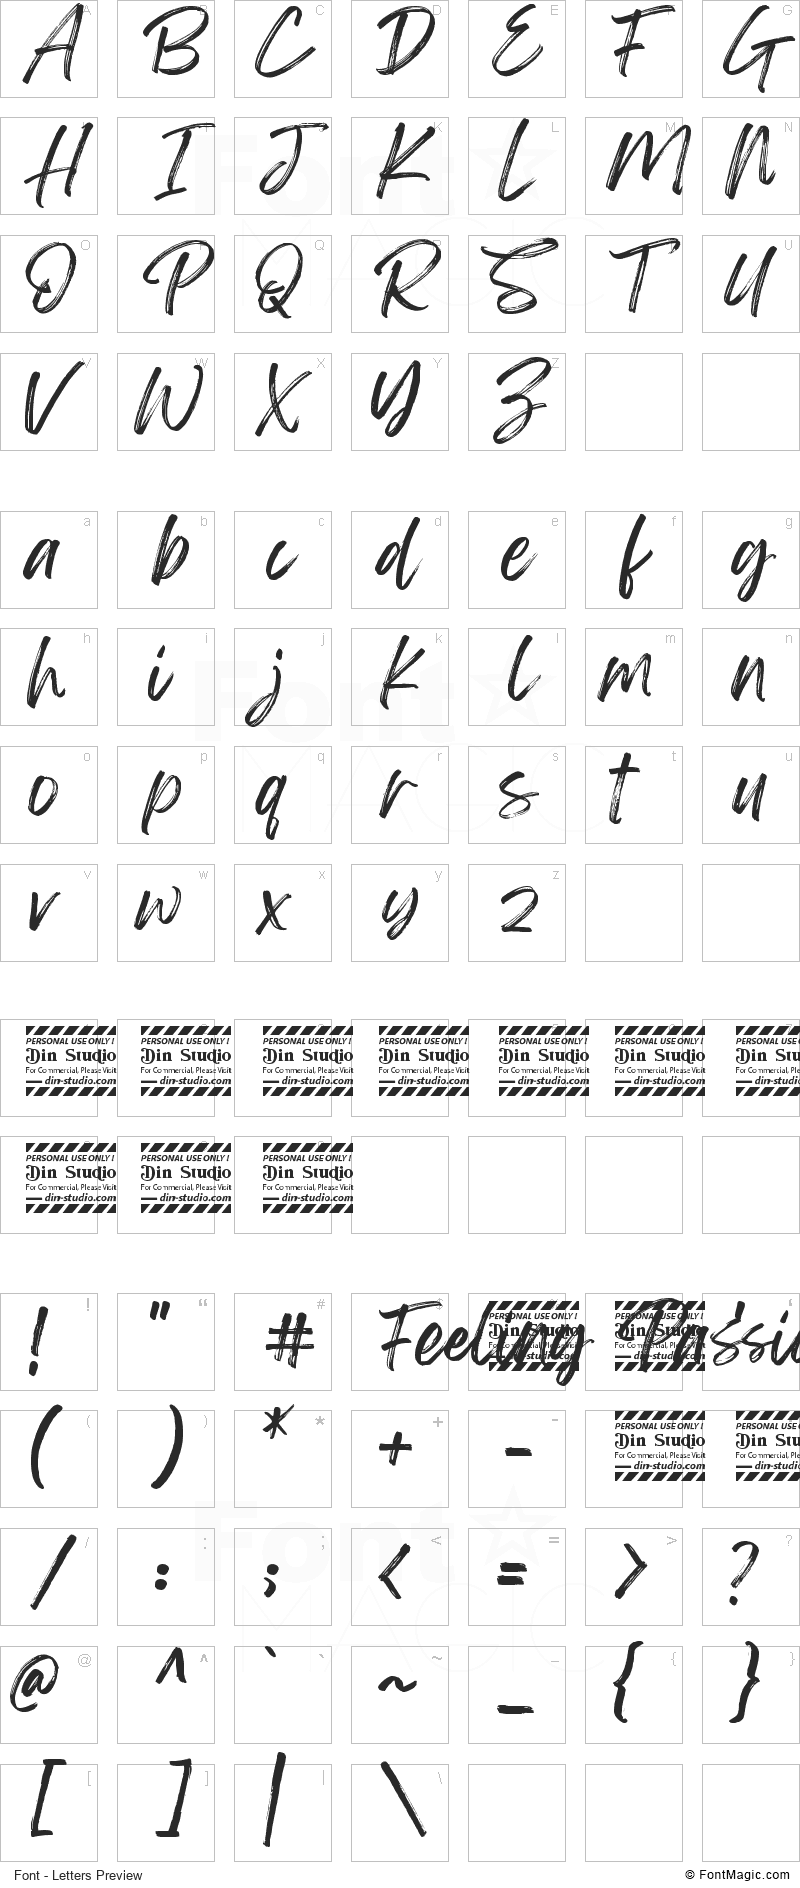 Feeling Passionate Font - All Latters Preview Chart